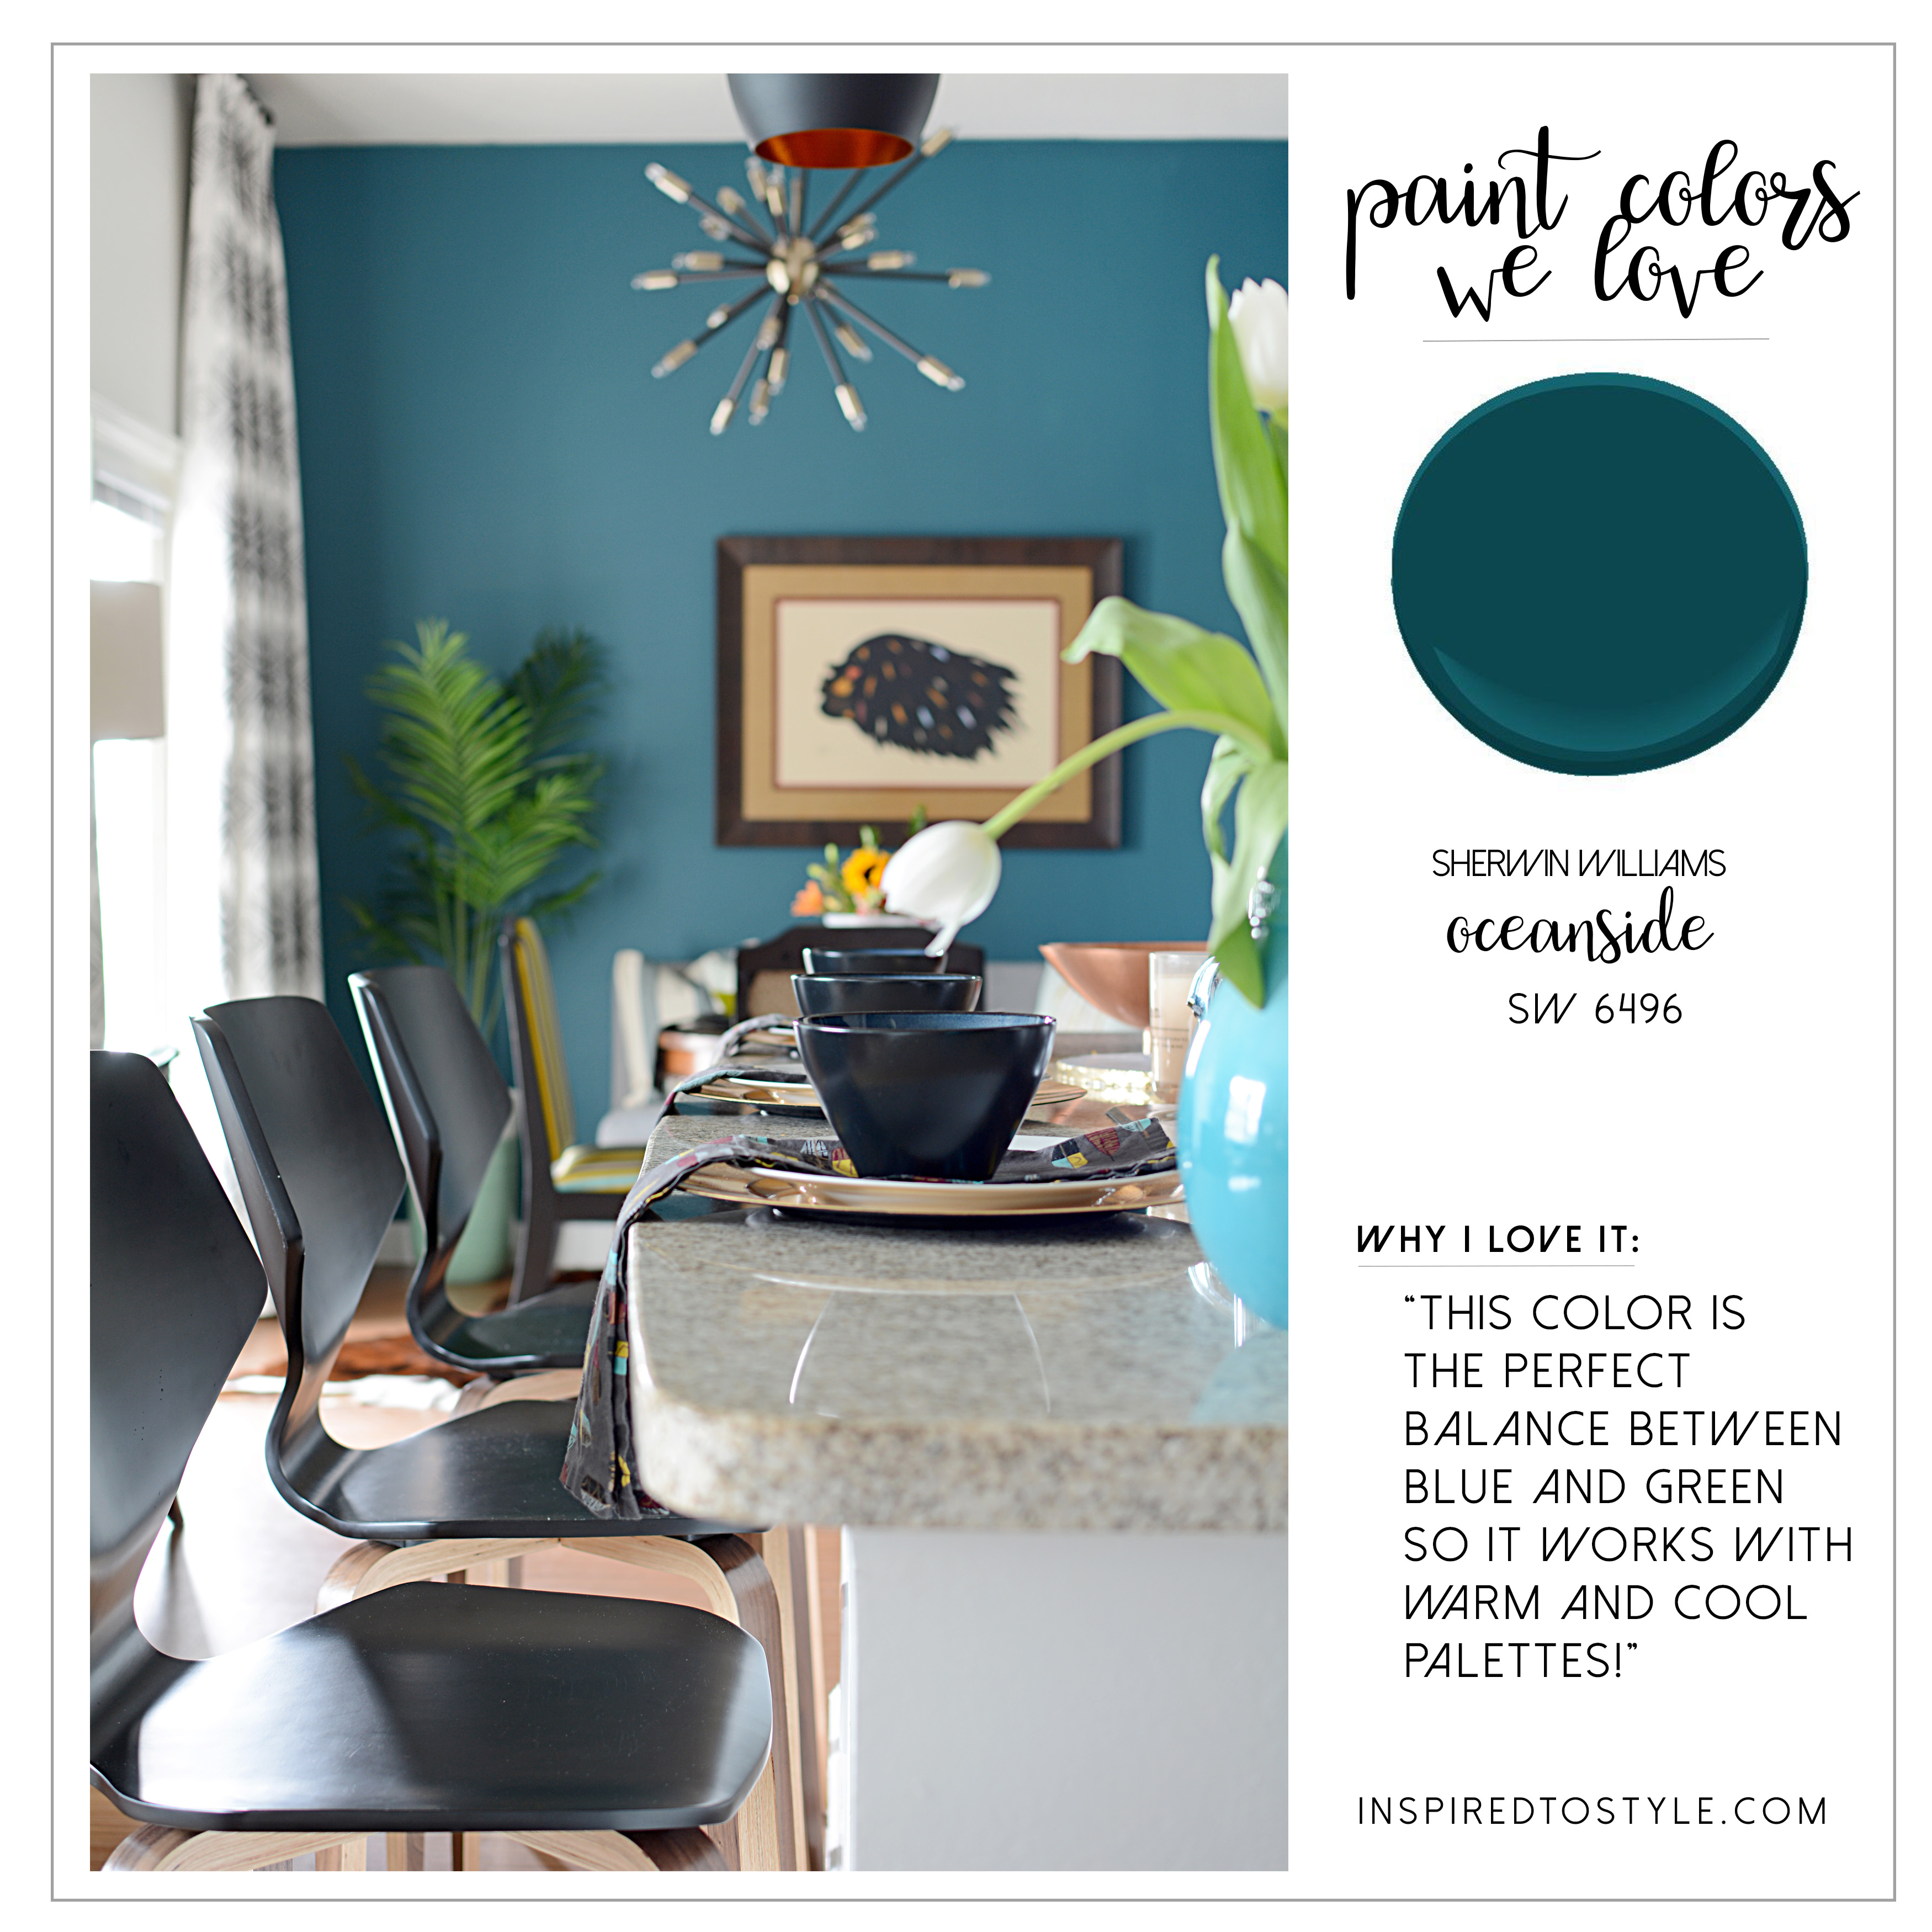 6 Of My Favorite Paint Colors Why They Work Inspired To Style